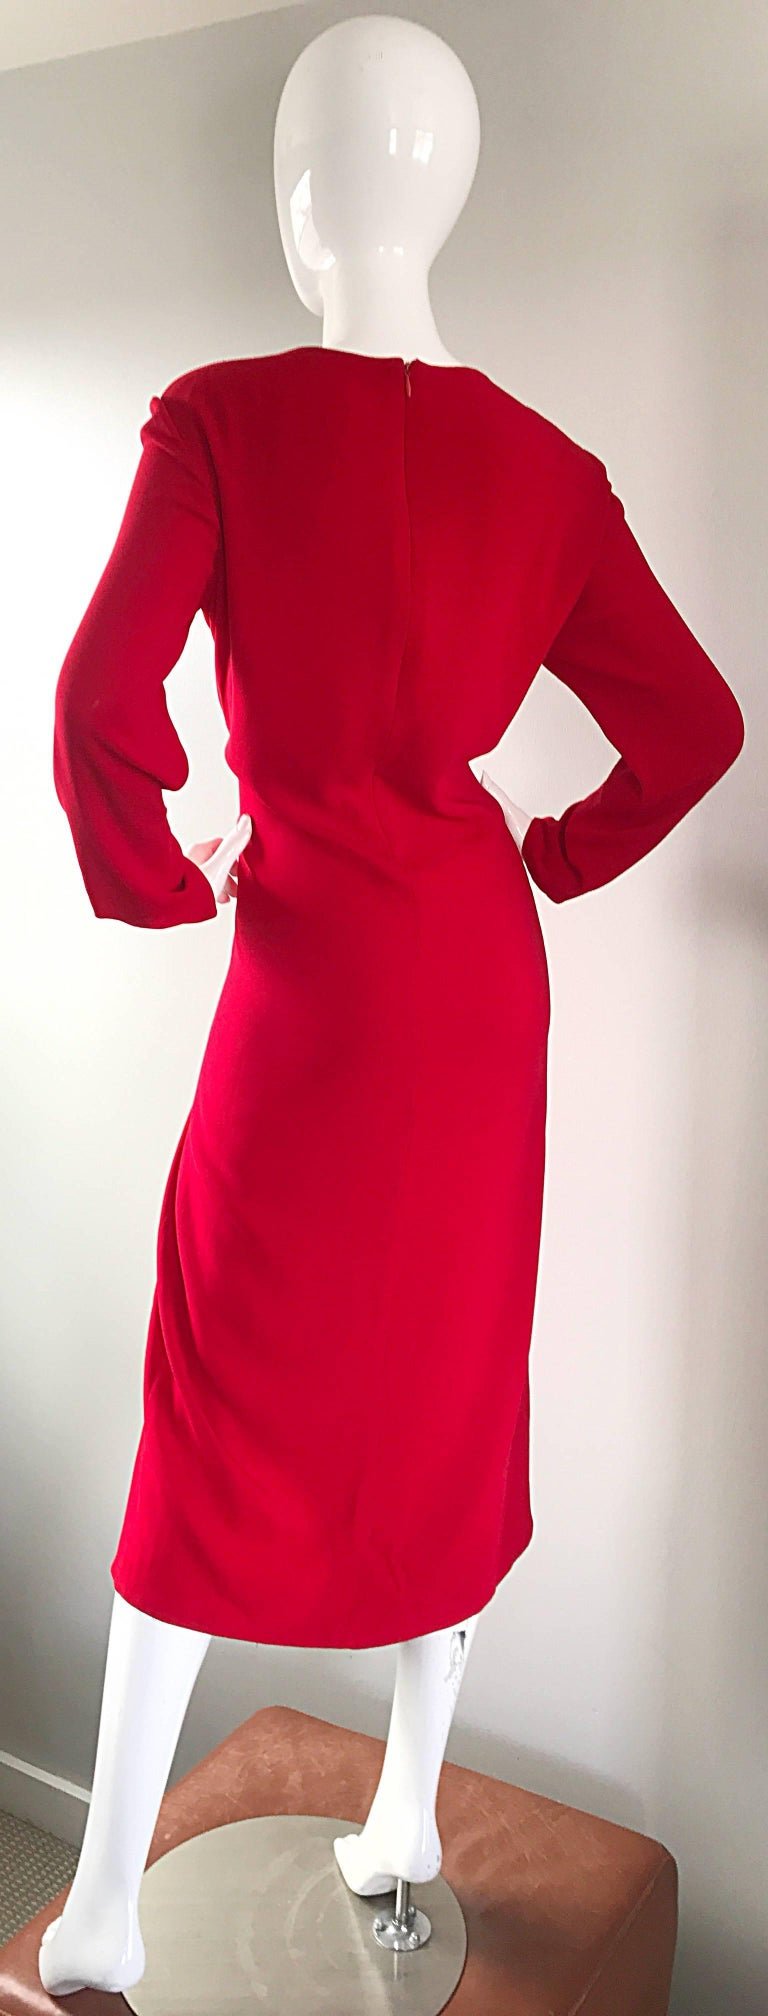 1990s Badgley Mischka Size 10 / 12 Lipstick Red Long Sleeve 90s Evening Dress 9